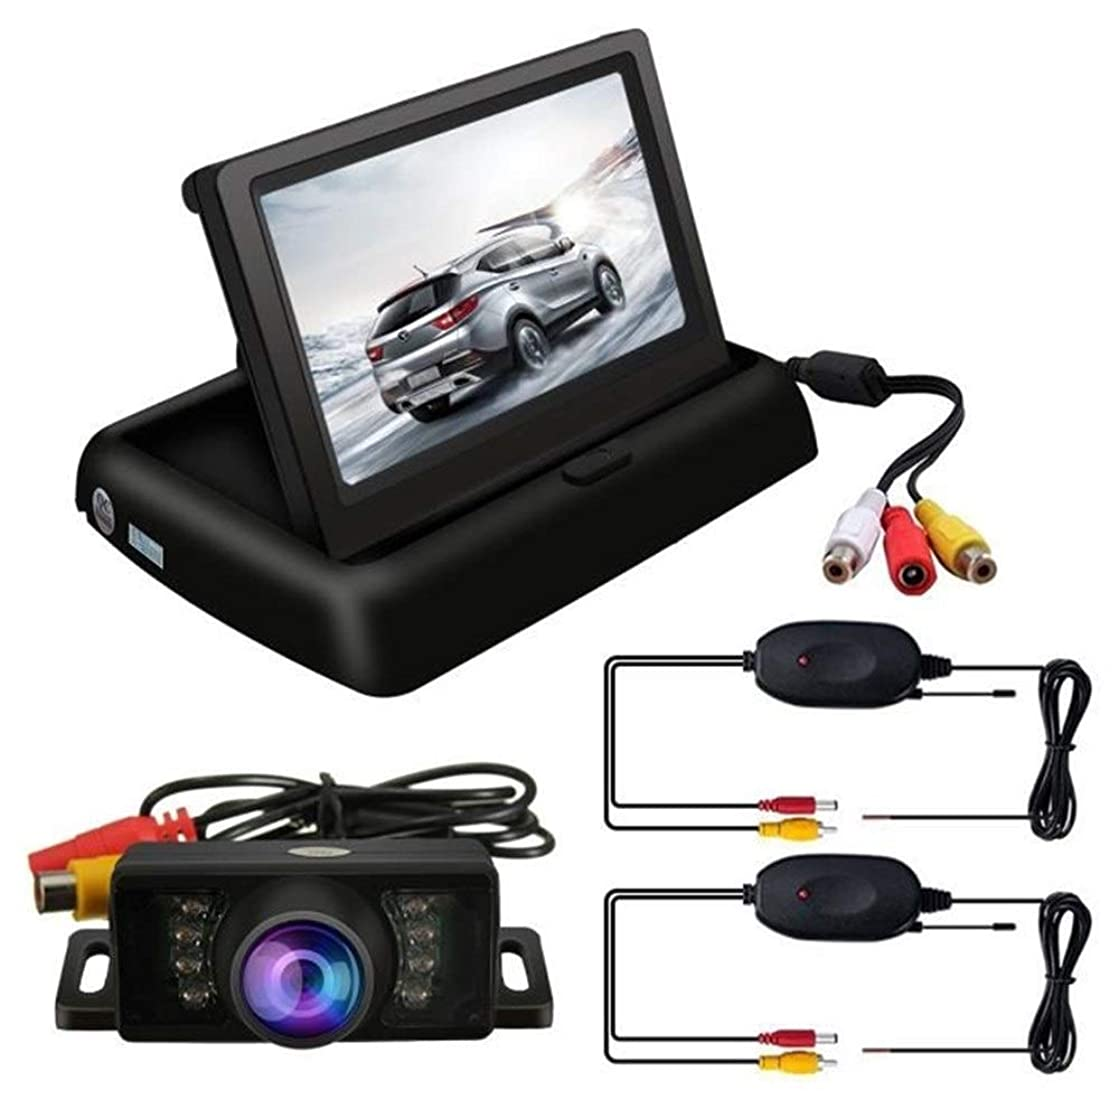 FUNXS Wireless Reversing Camera - Folding Monitoring Kit HD Car Reversing Rear View Camera + 4.3 Inch LCD Folding Display Parking Assist System Car On-Dash Mounted Cameras